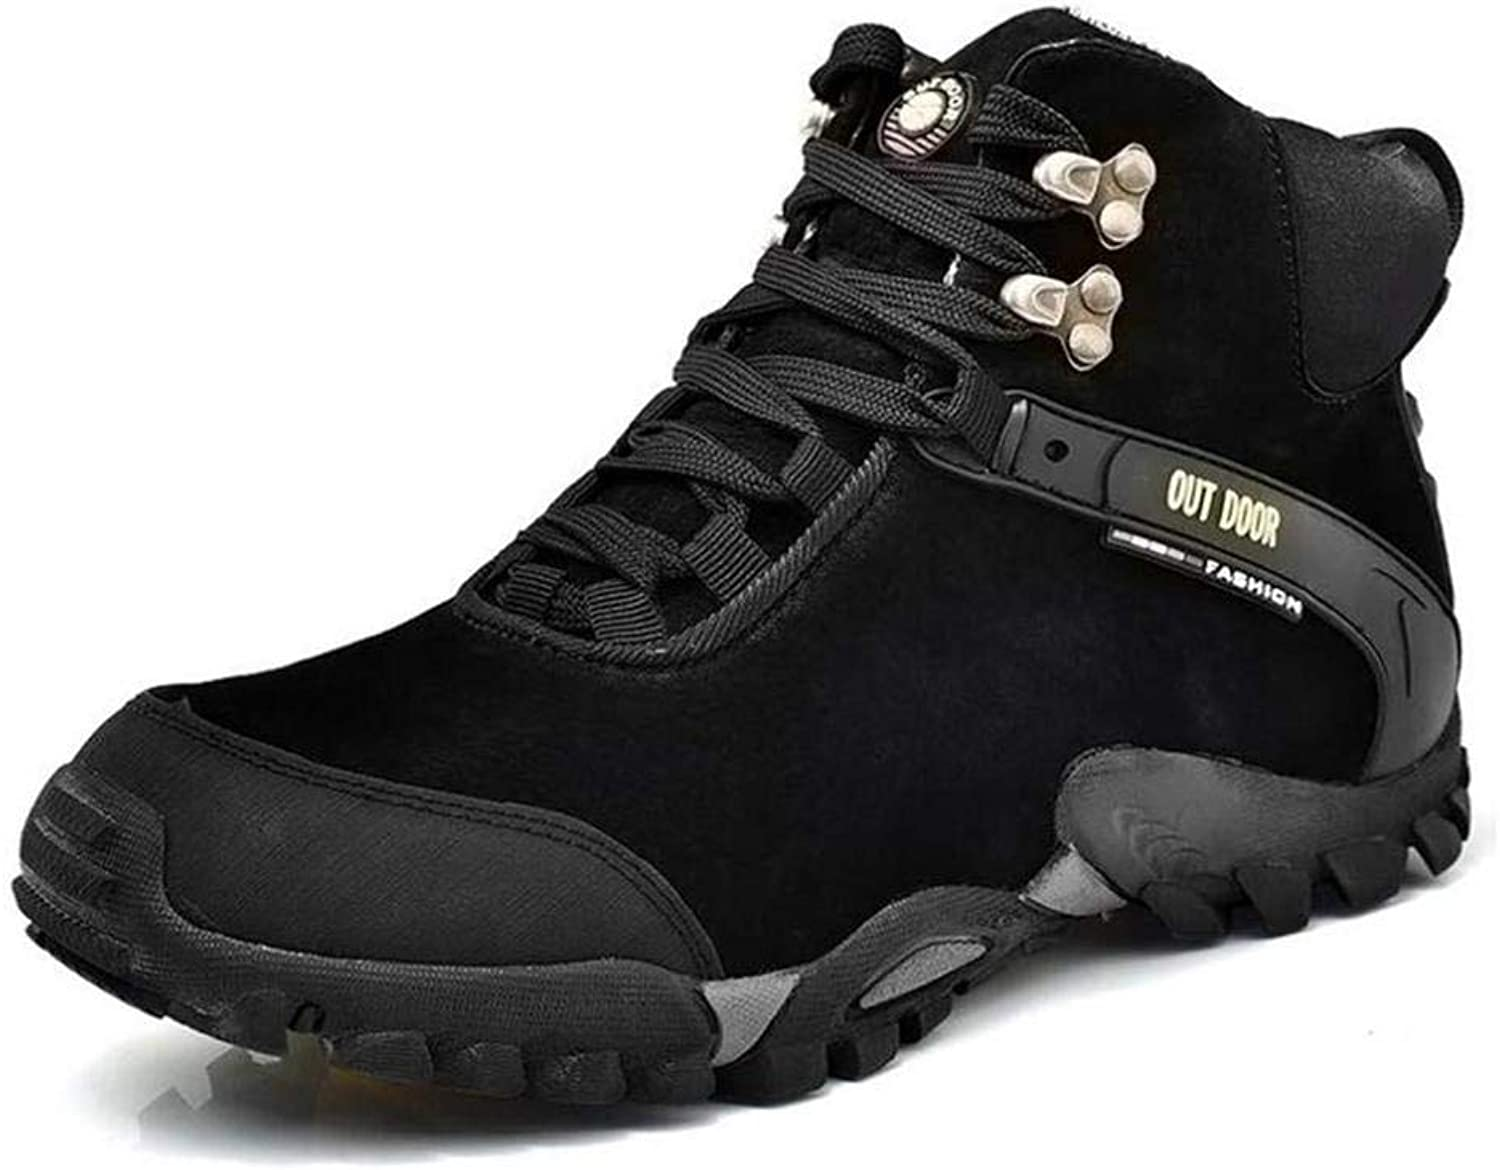 H&H Men's Casual shoes,Fall Winter Leather Outdoor Hiking shoes, Climbing Sneakers, Running shoes, Travel shoes, Camping Trekking